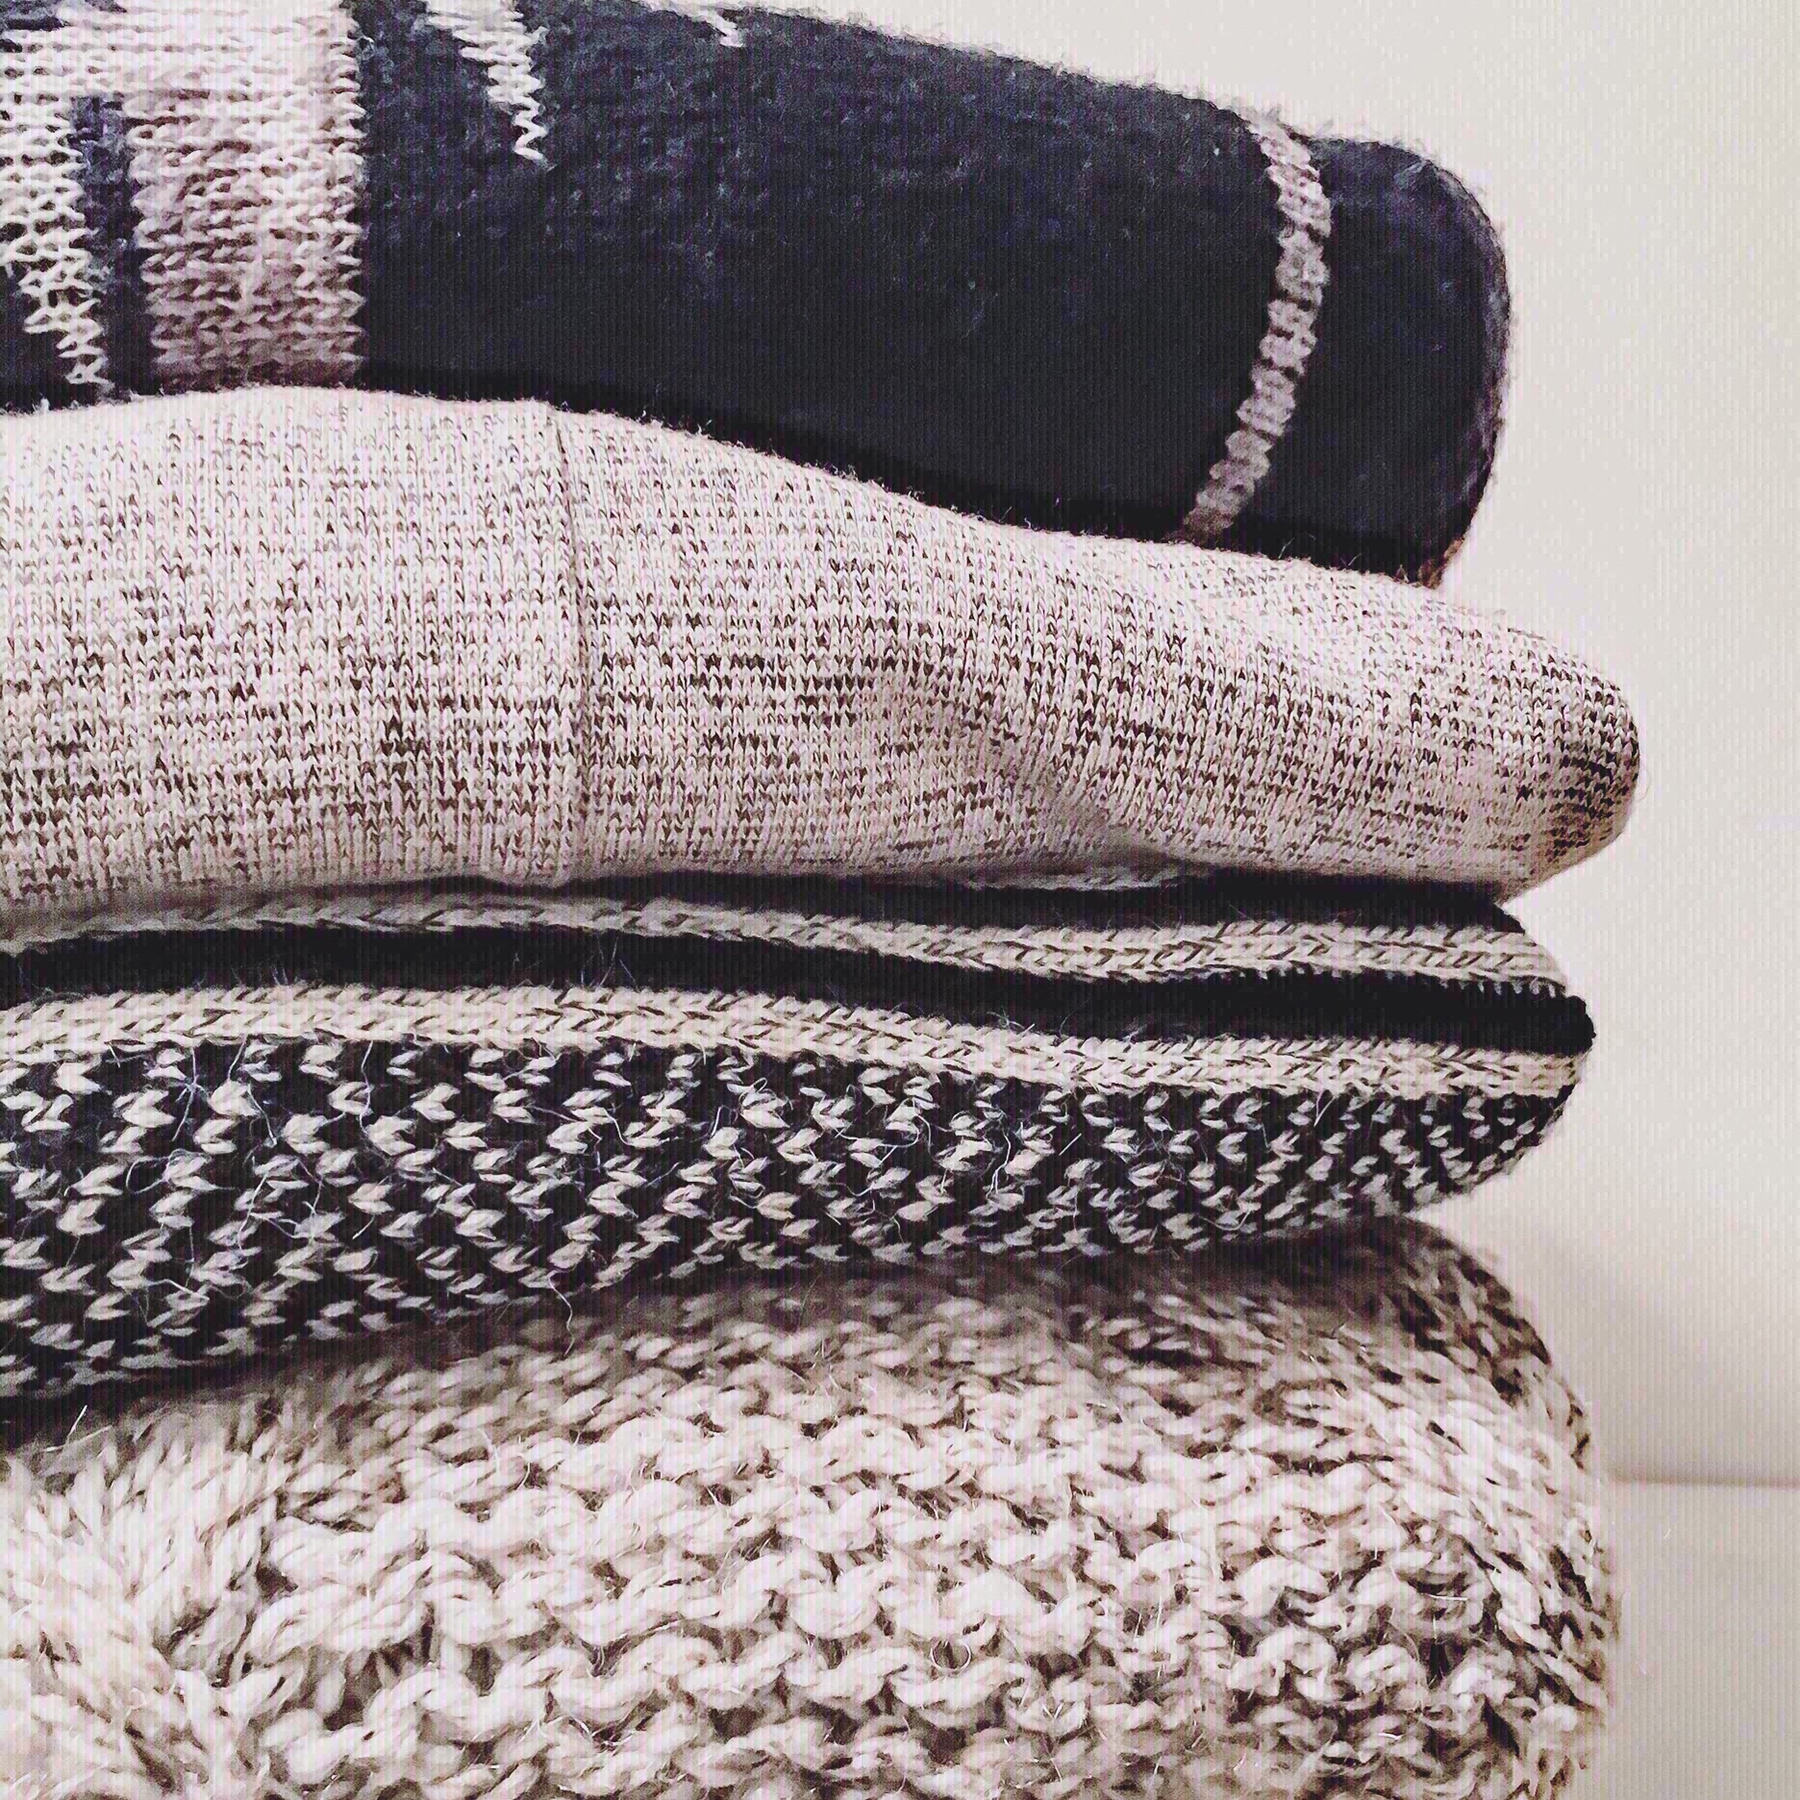 Stack of winter sweaters